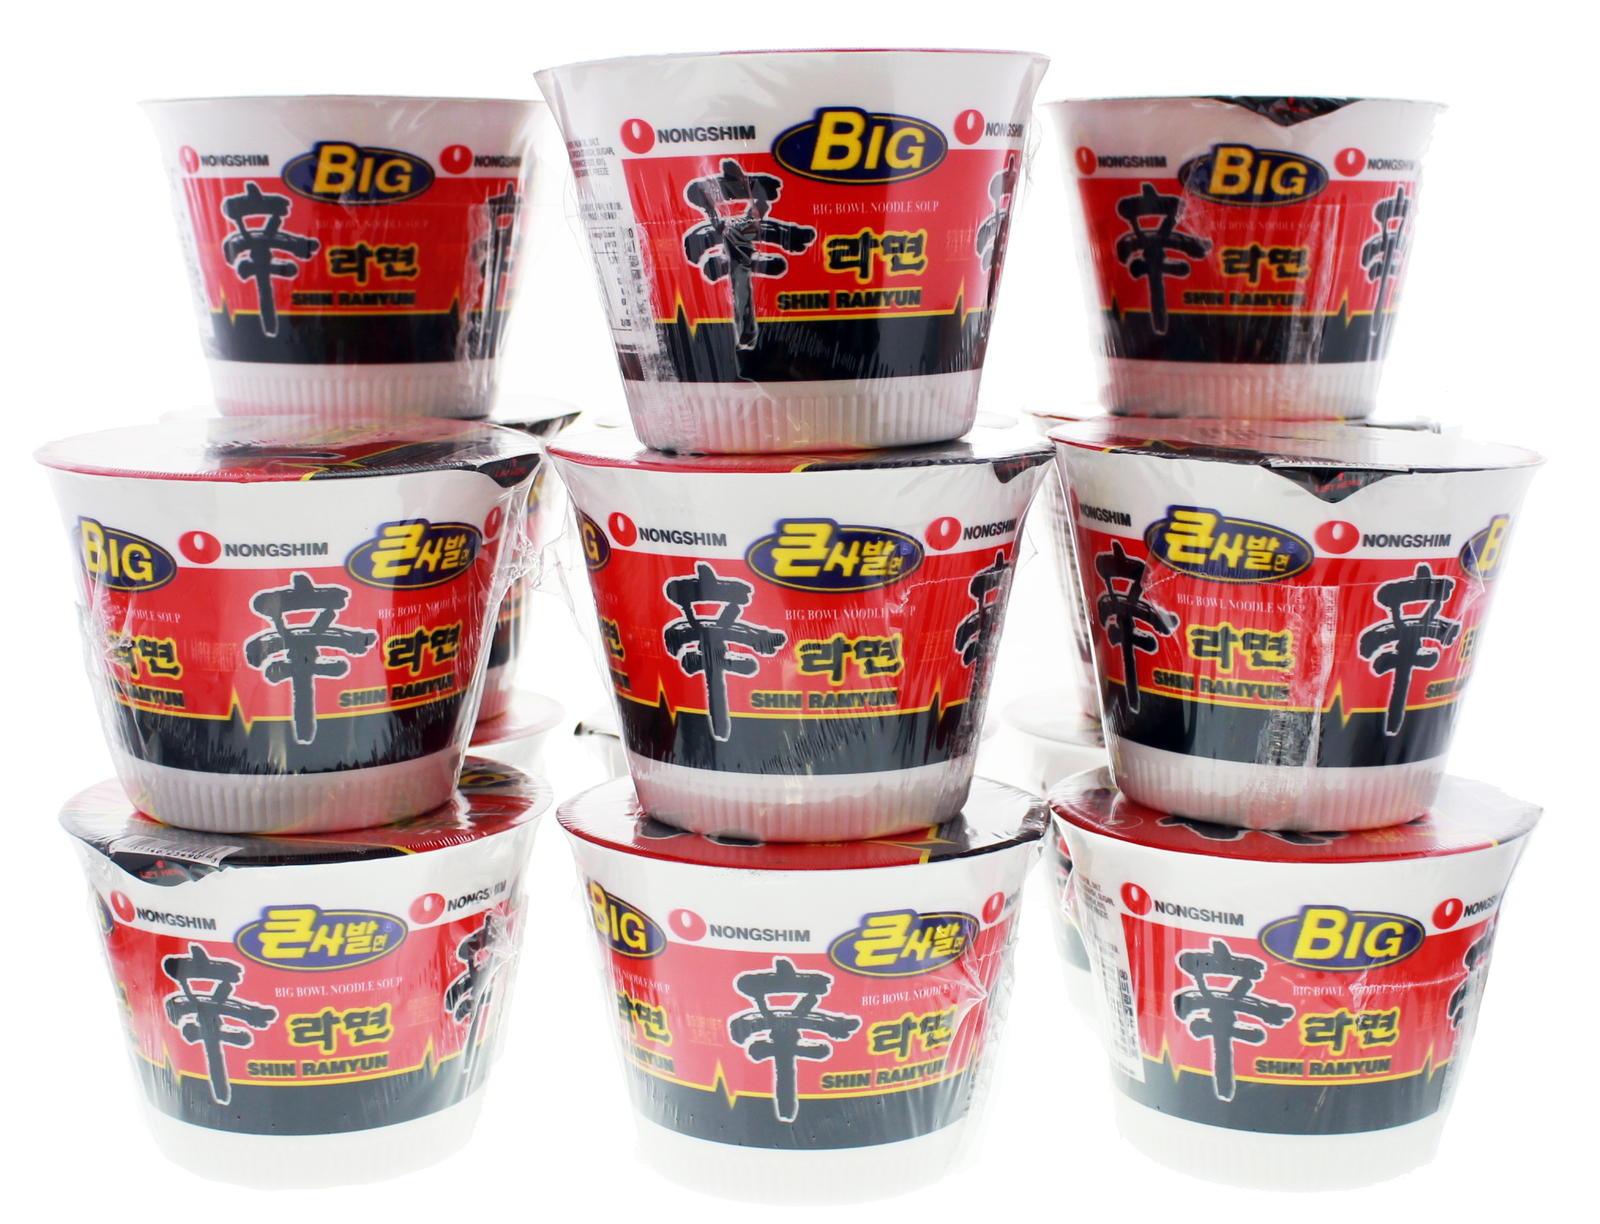 Nong Shim Big Noodle Cup Hot & Spicy 114g (16 Pack) image